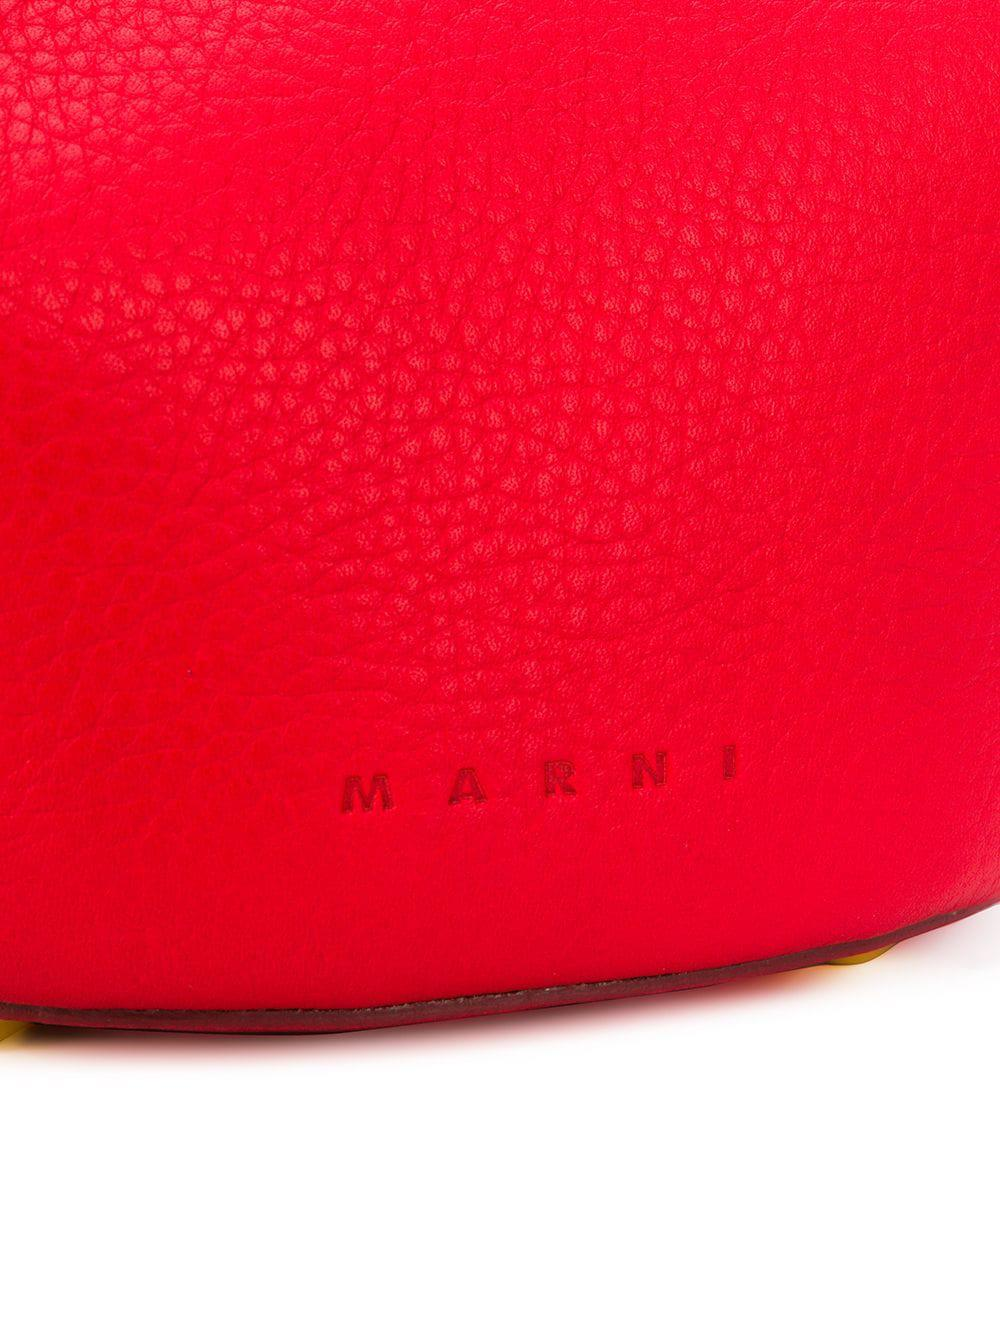 Marni Leather Pannier Tote Bag in Red